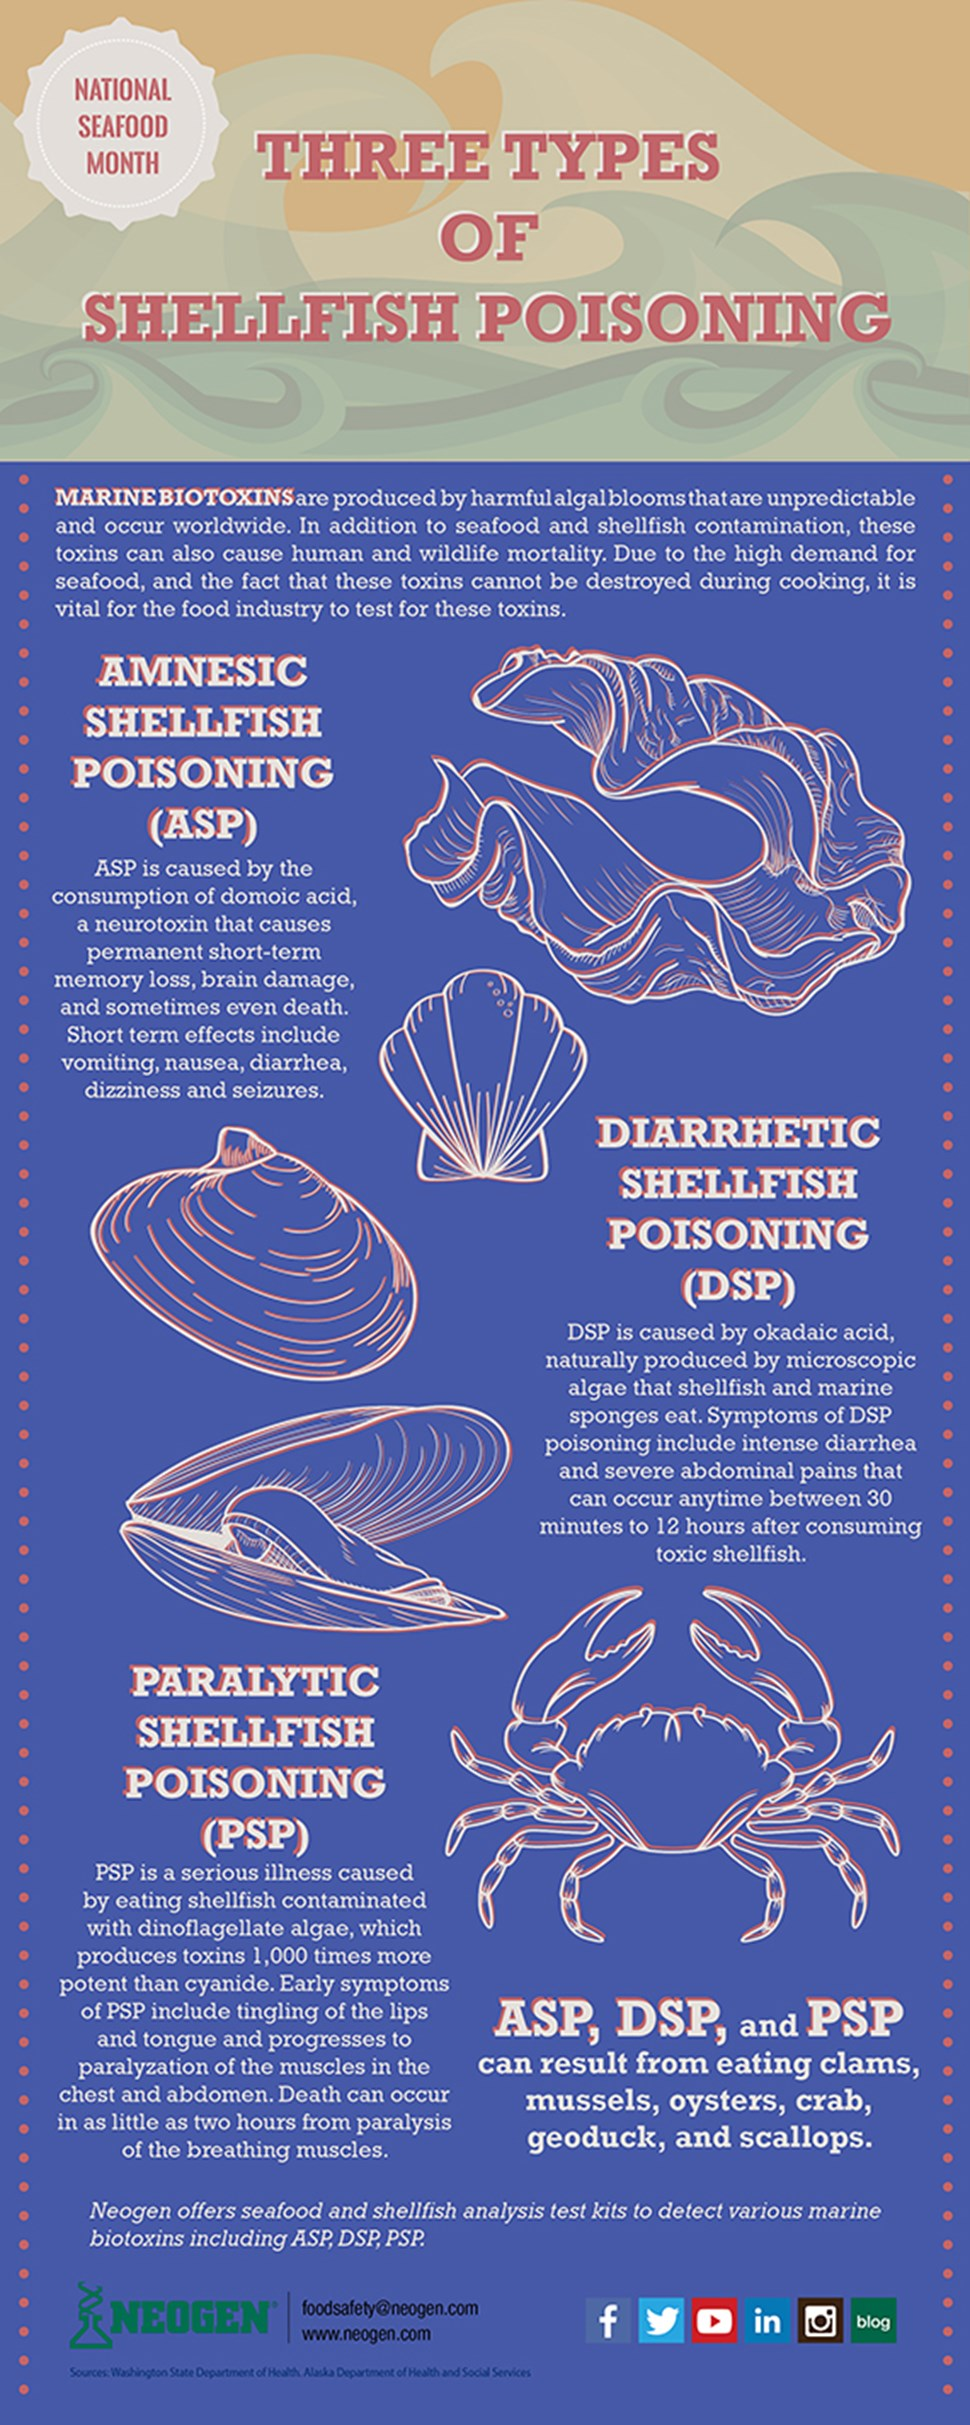 National Seafood Month-3 types of shellfish poisoning